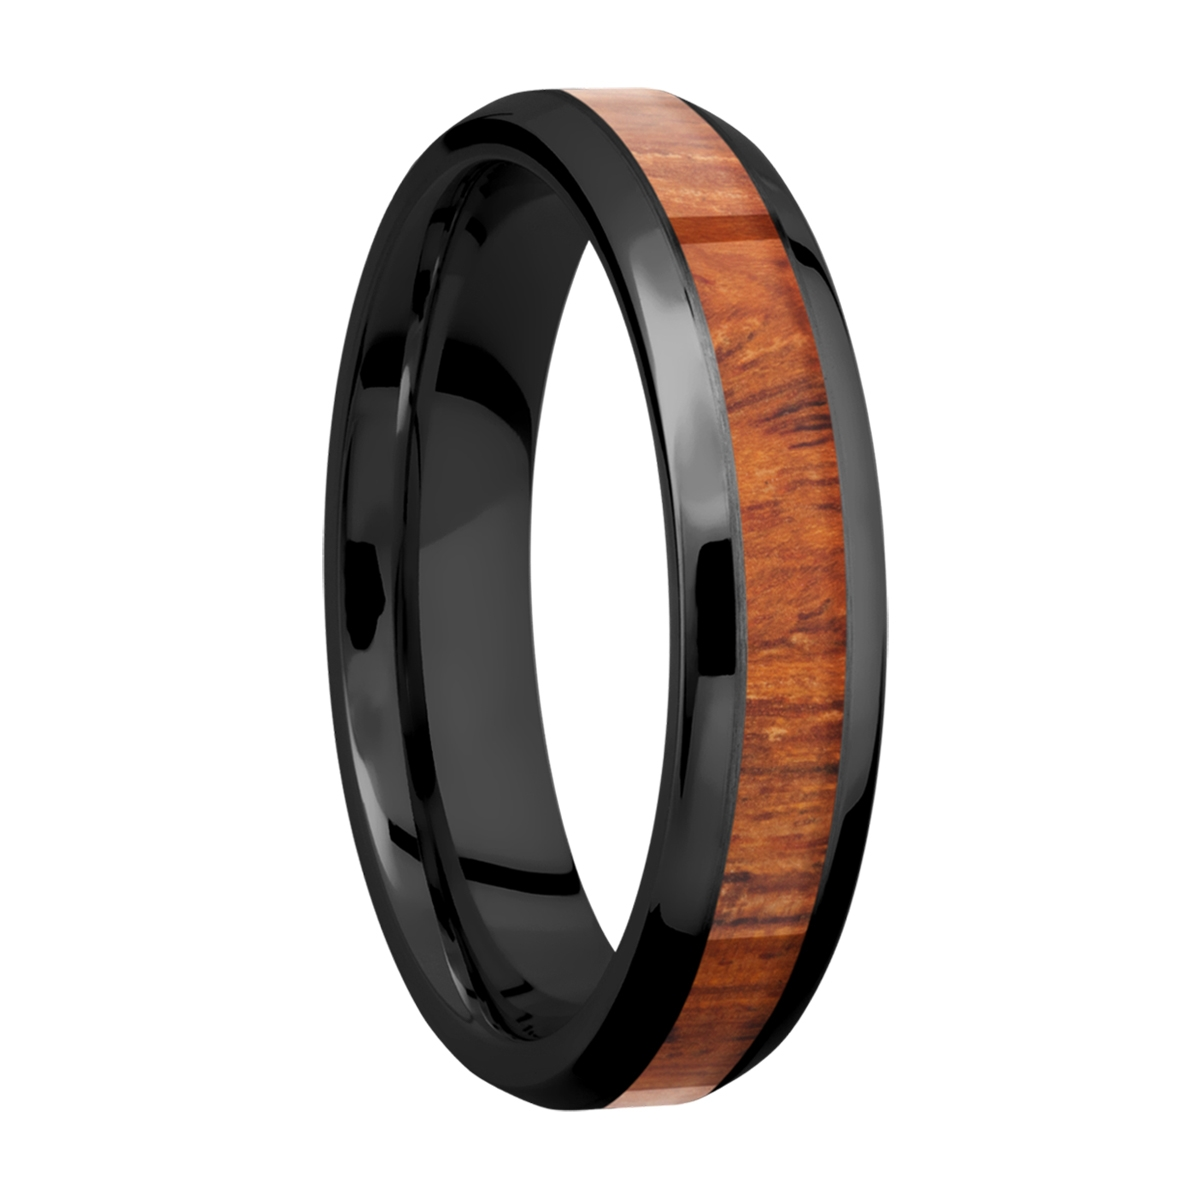 Lashbrook Z5B13(NS)/HARDWOOD Zirconium Wedding Ring or Band Alternative View 1